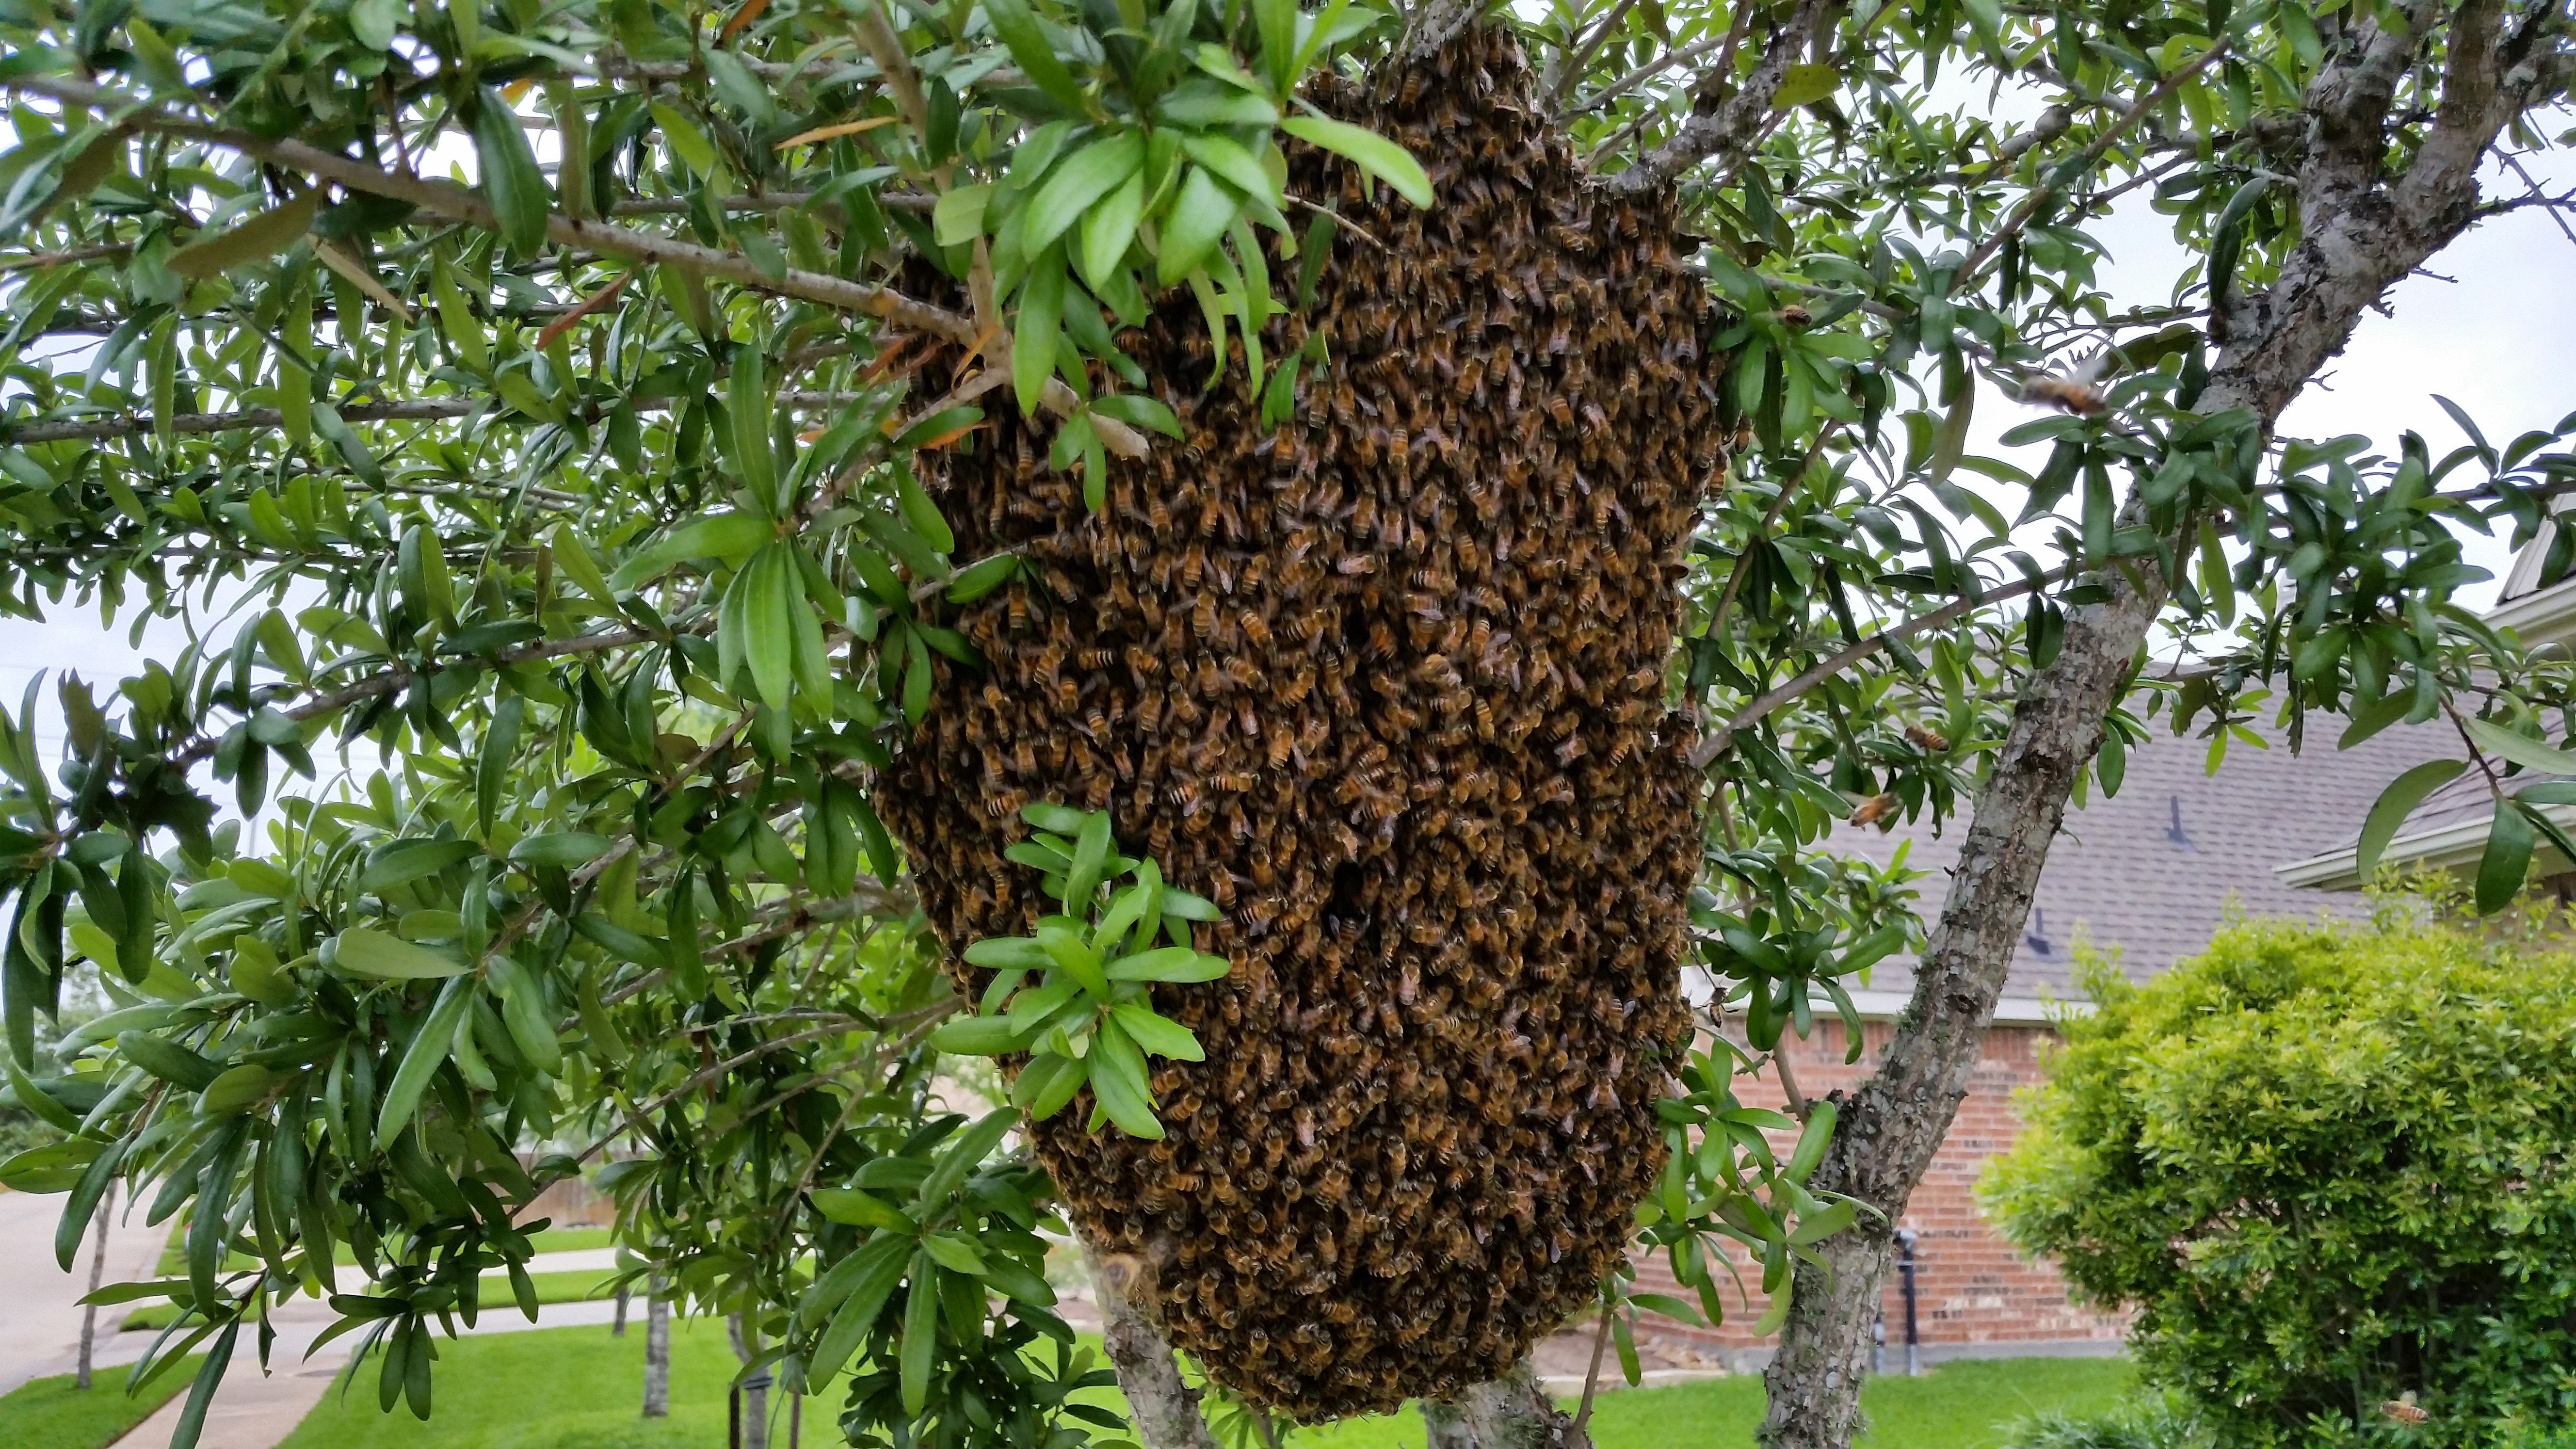 BZ Honey - Massive swarm in a front yard tree.